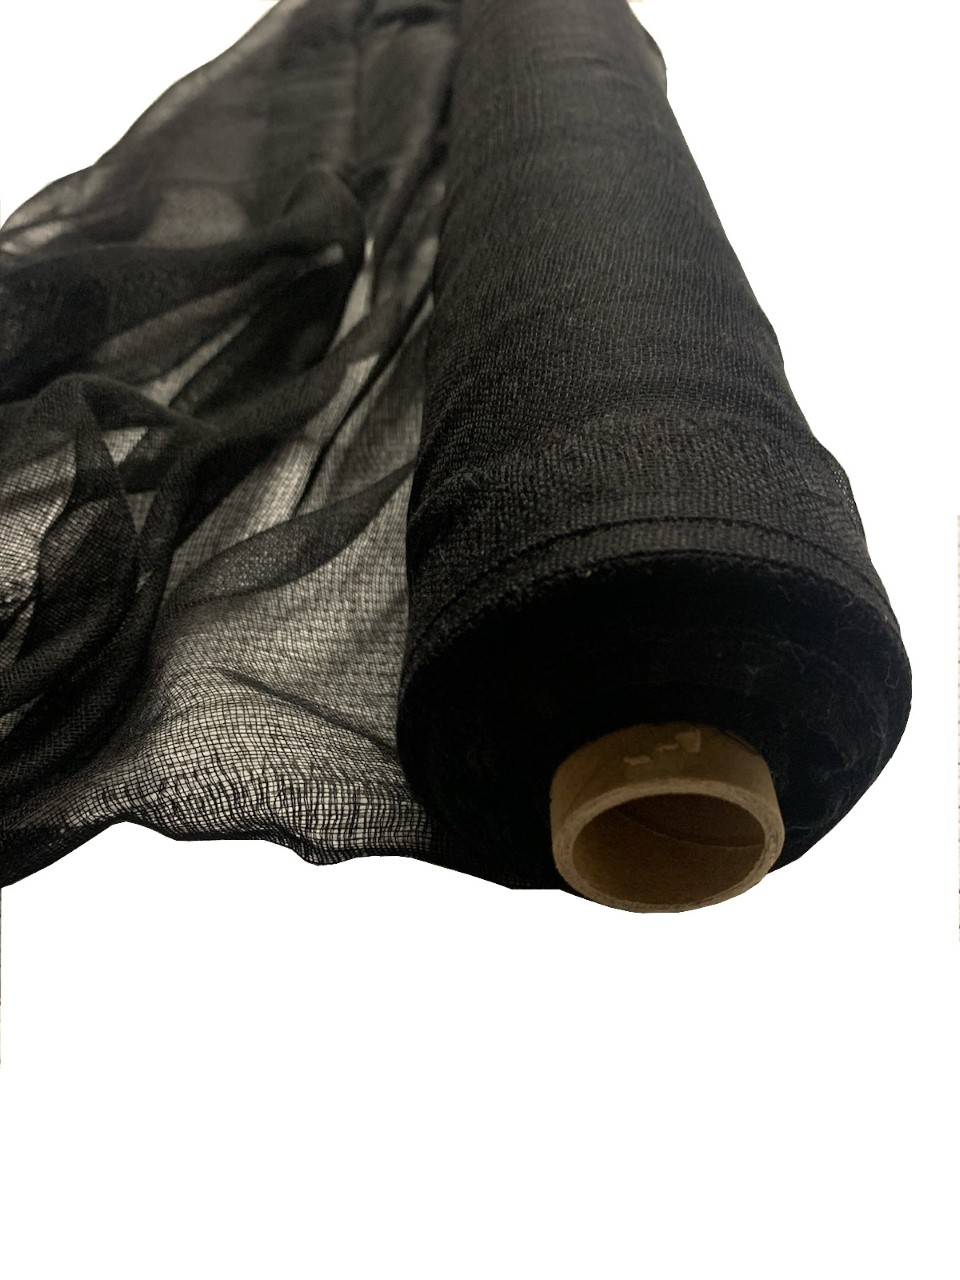 "Black Cheesecloth 36"" x 100 Foot Roll - 100% Cotton"